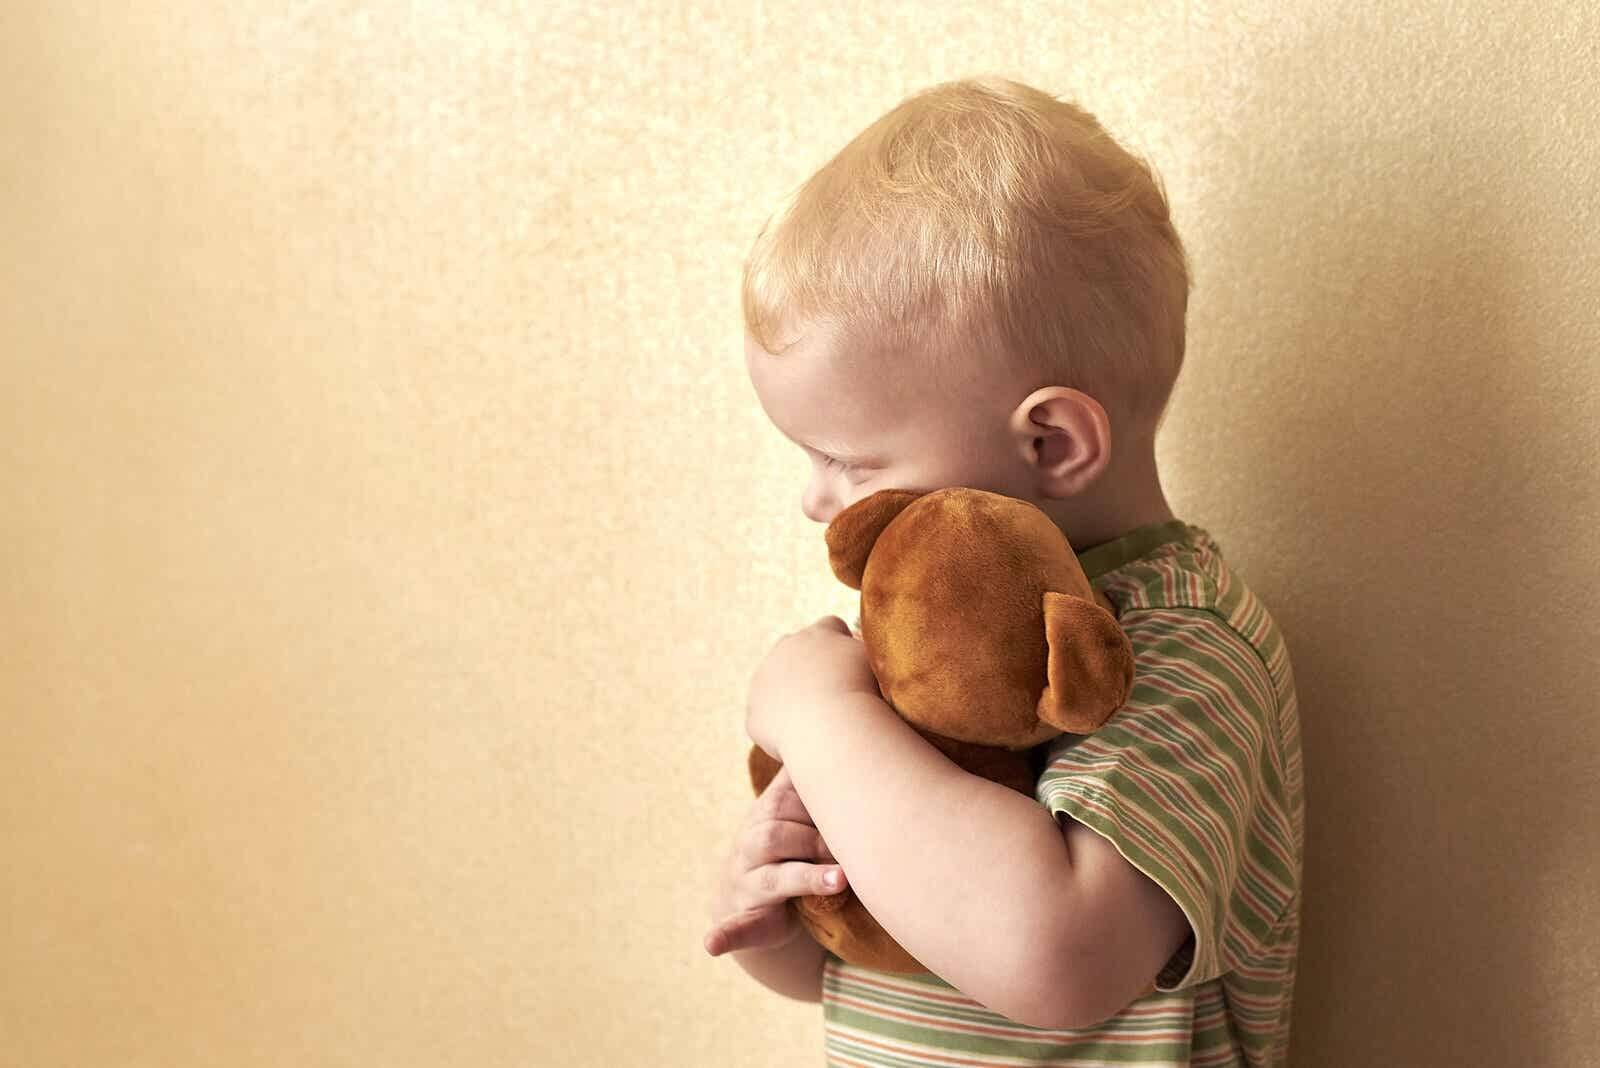 Child hugging a stuffed animal because he's afraid of death.